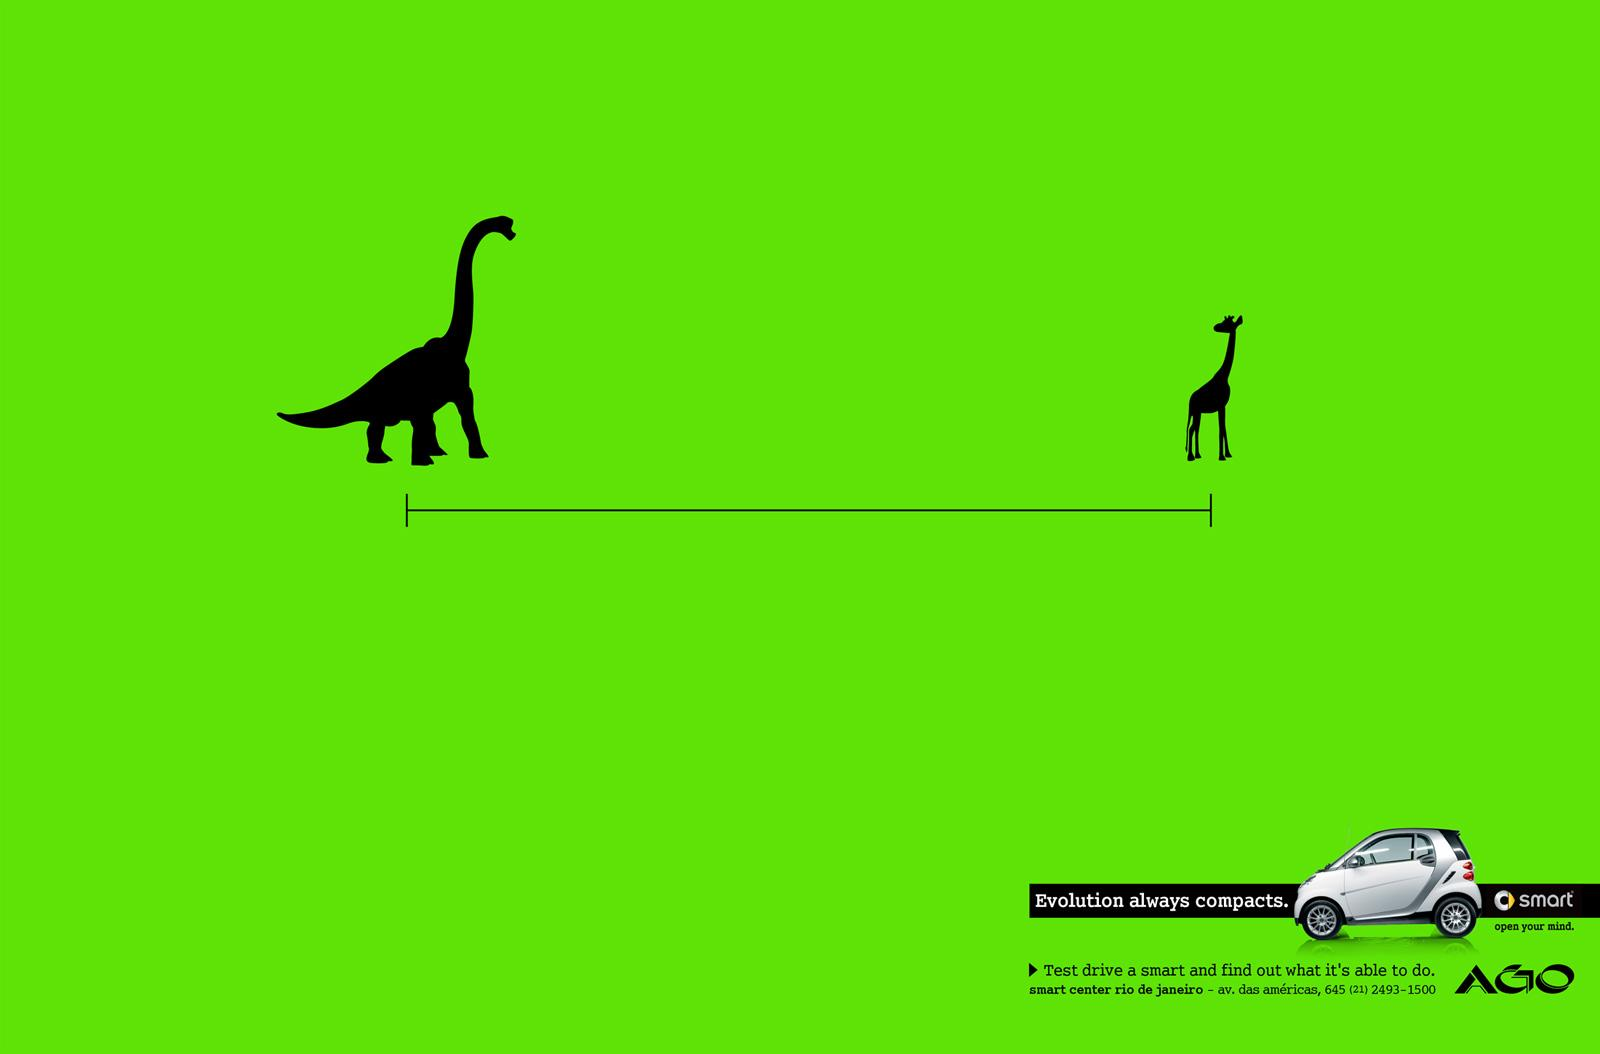 Smart Print Ad -  Evolution always compacts, Brontosaurus